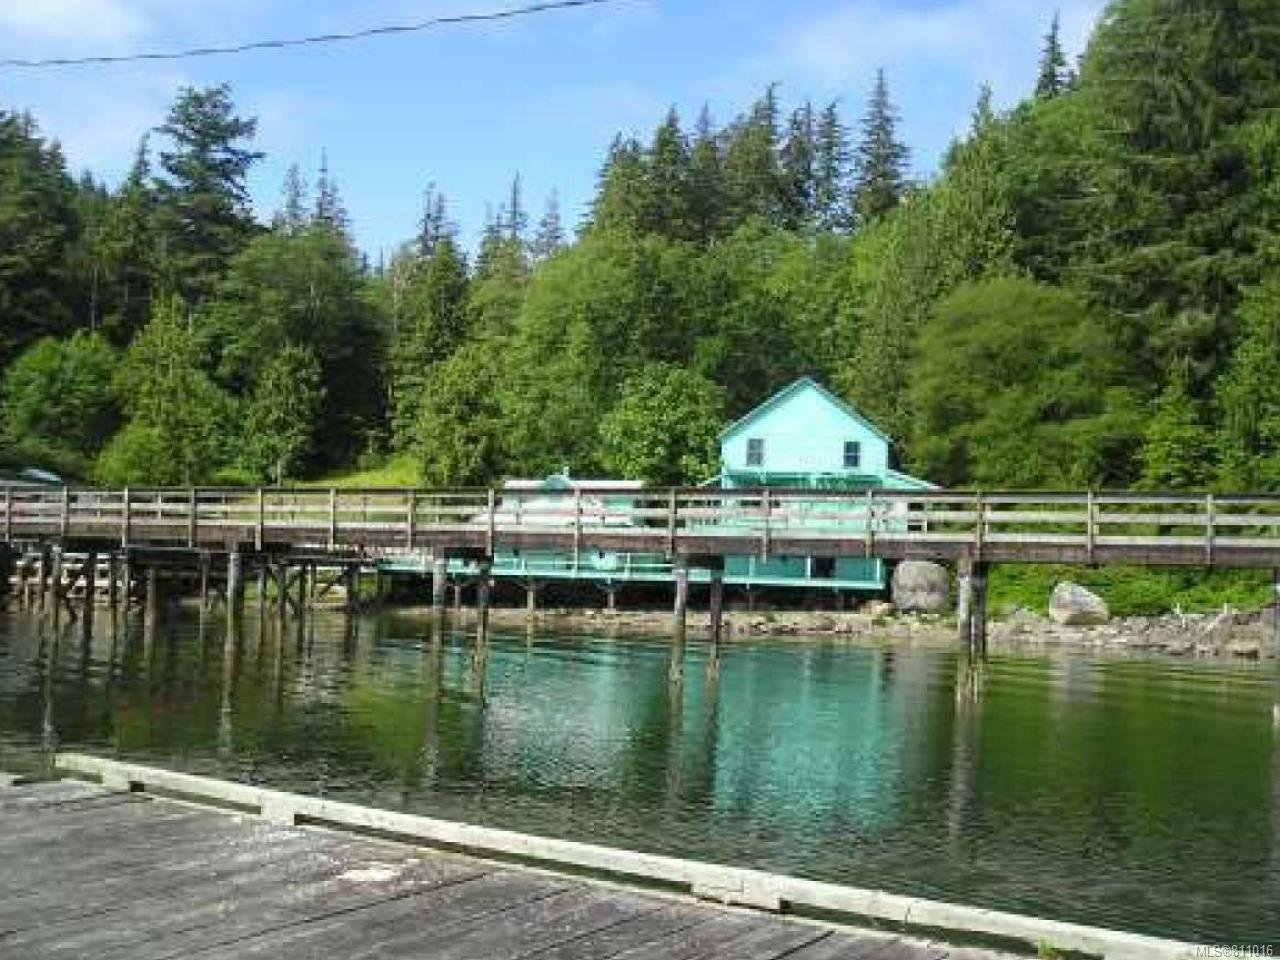 Main Photo: LT A & B Minstrel Island in CAMPBELL RIVER: Isl Small Islands (Campbell River Area) Land for sale (Islands)  : MLS®# 811016